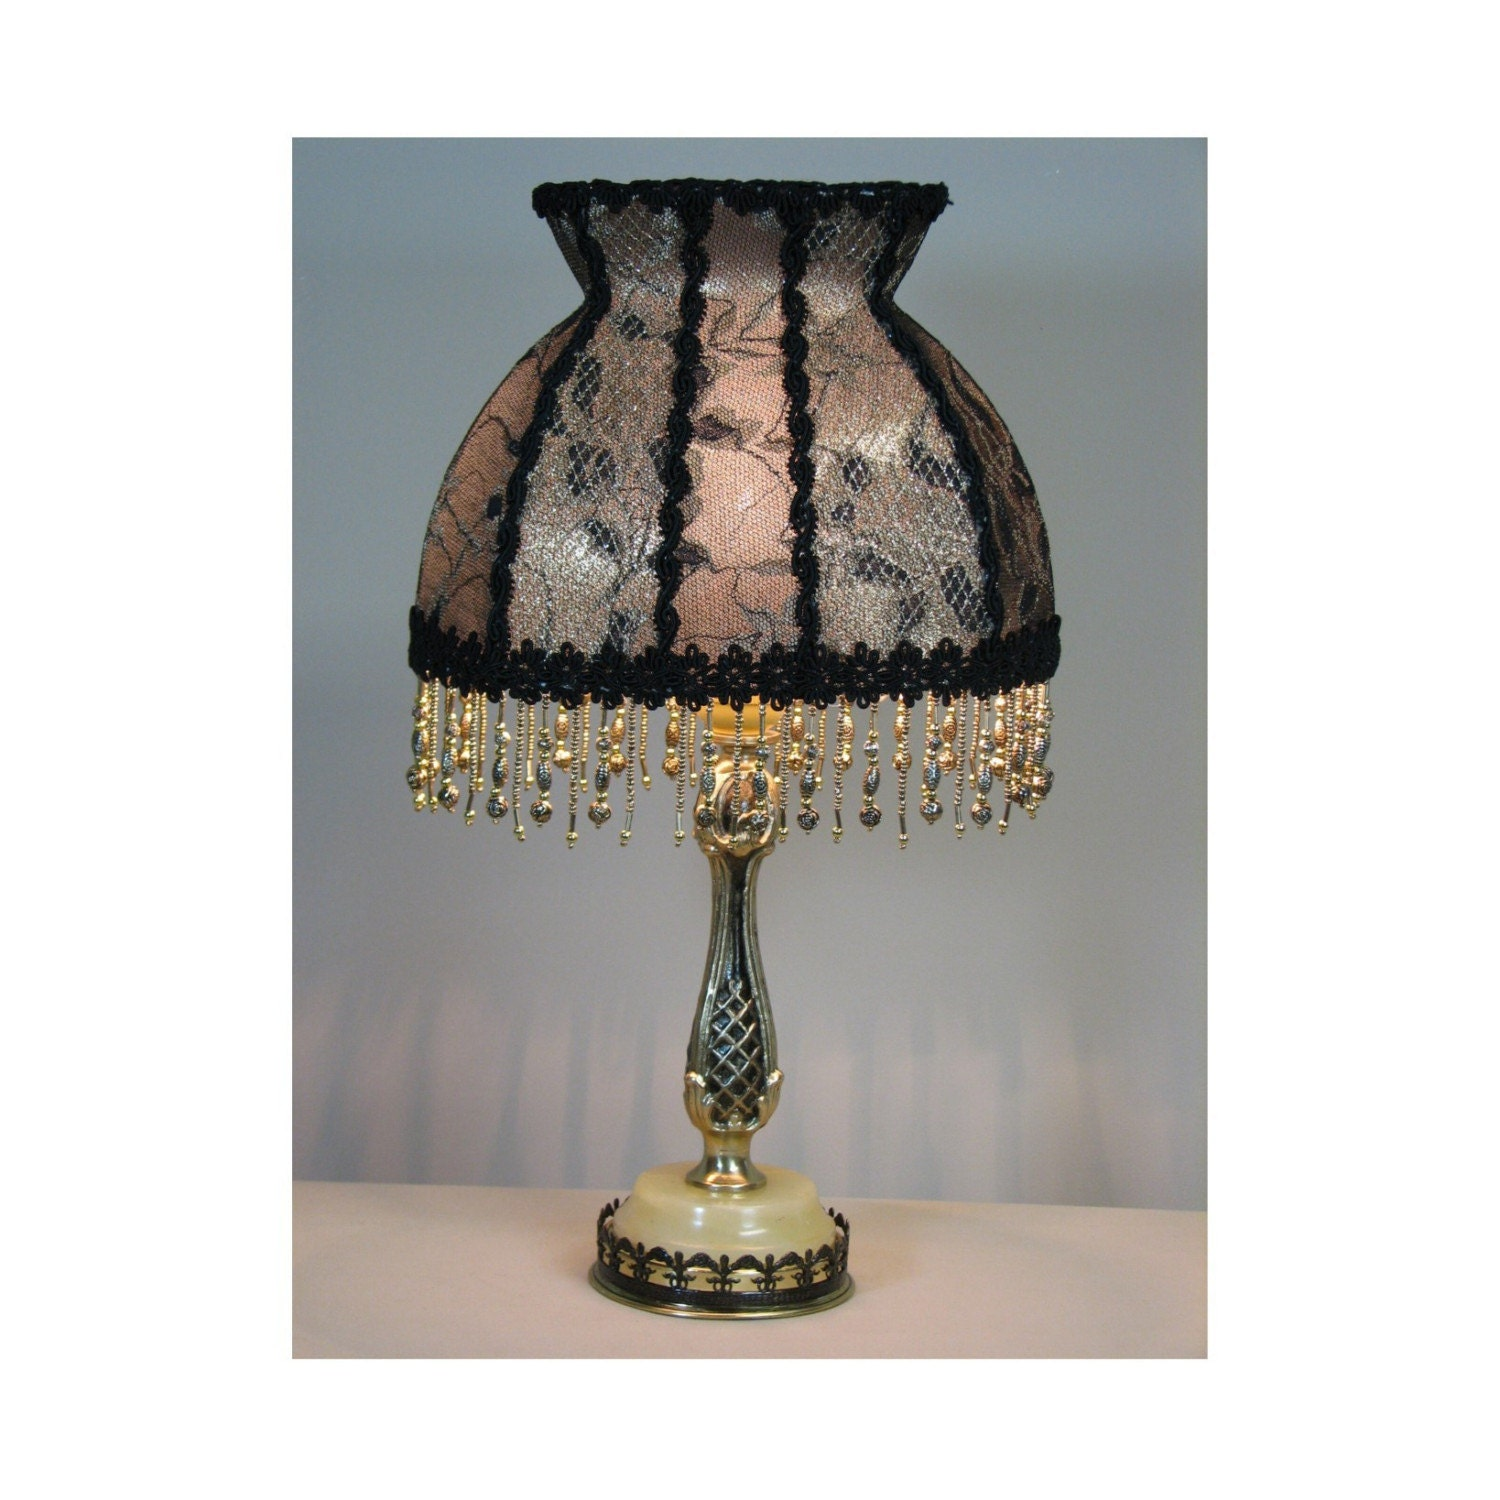 Vintage Lamp Shades: Vintage Table Lamp With Victorian Lamp Shade The Letter From